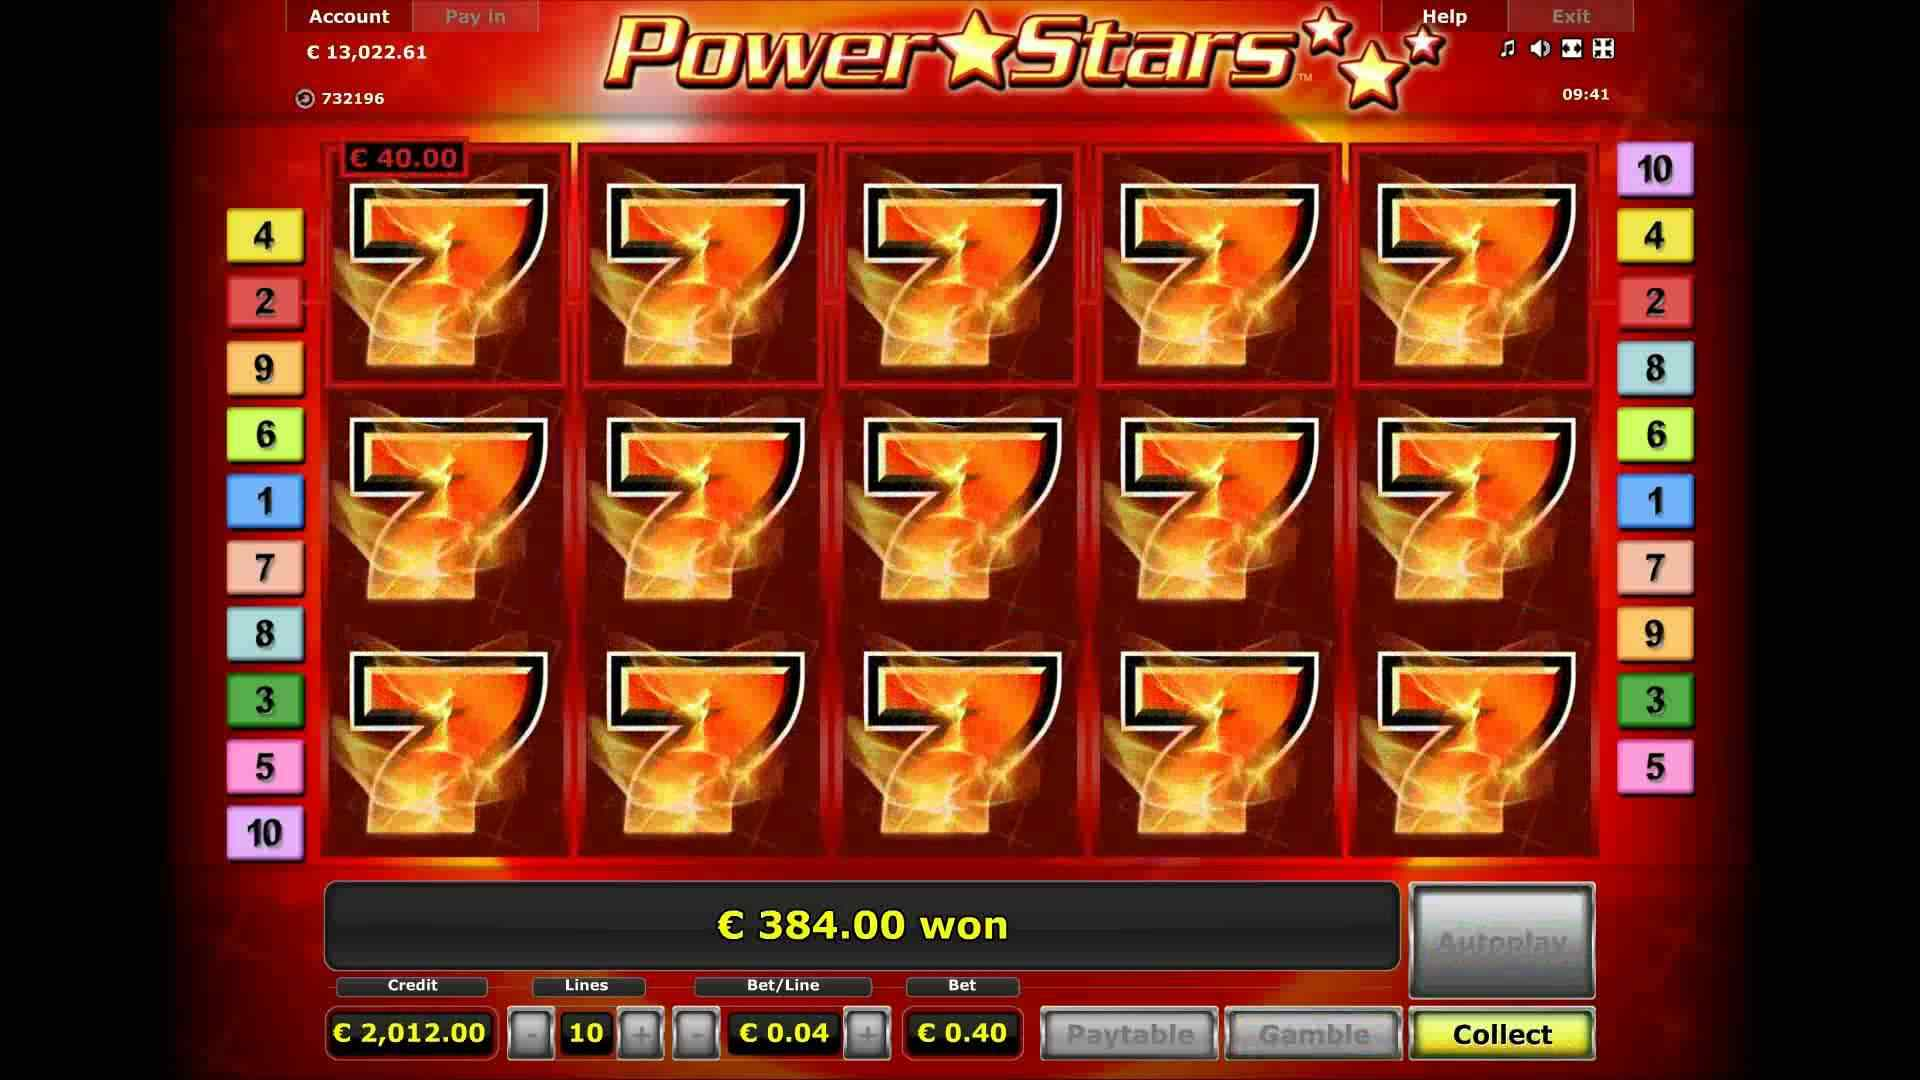 Power star games casino casino host sop manual